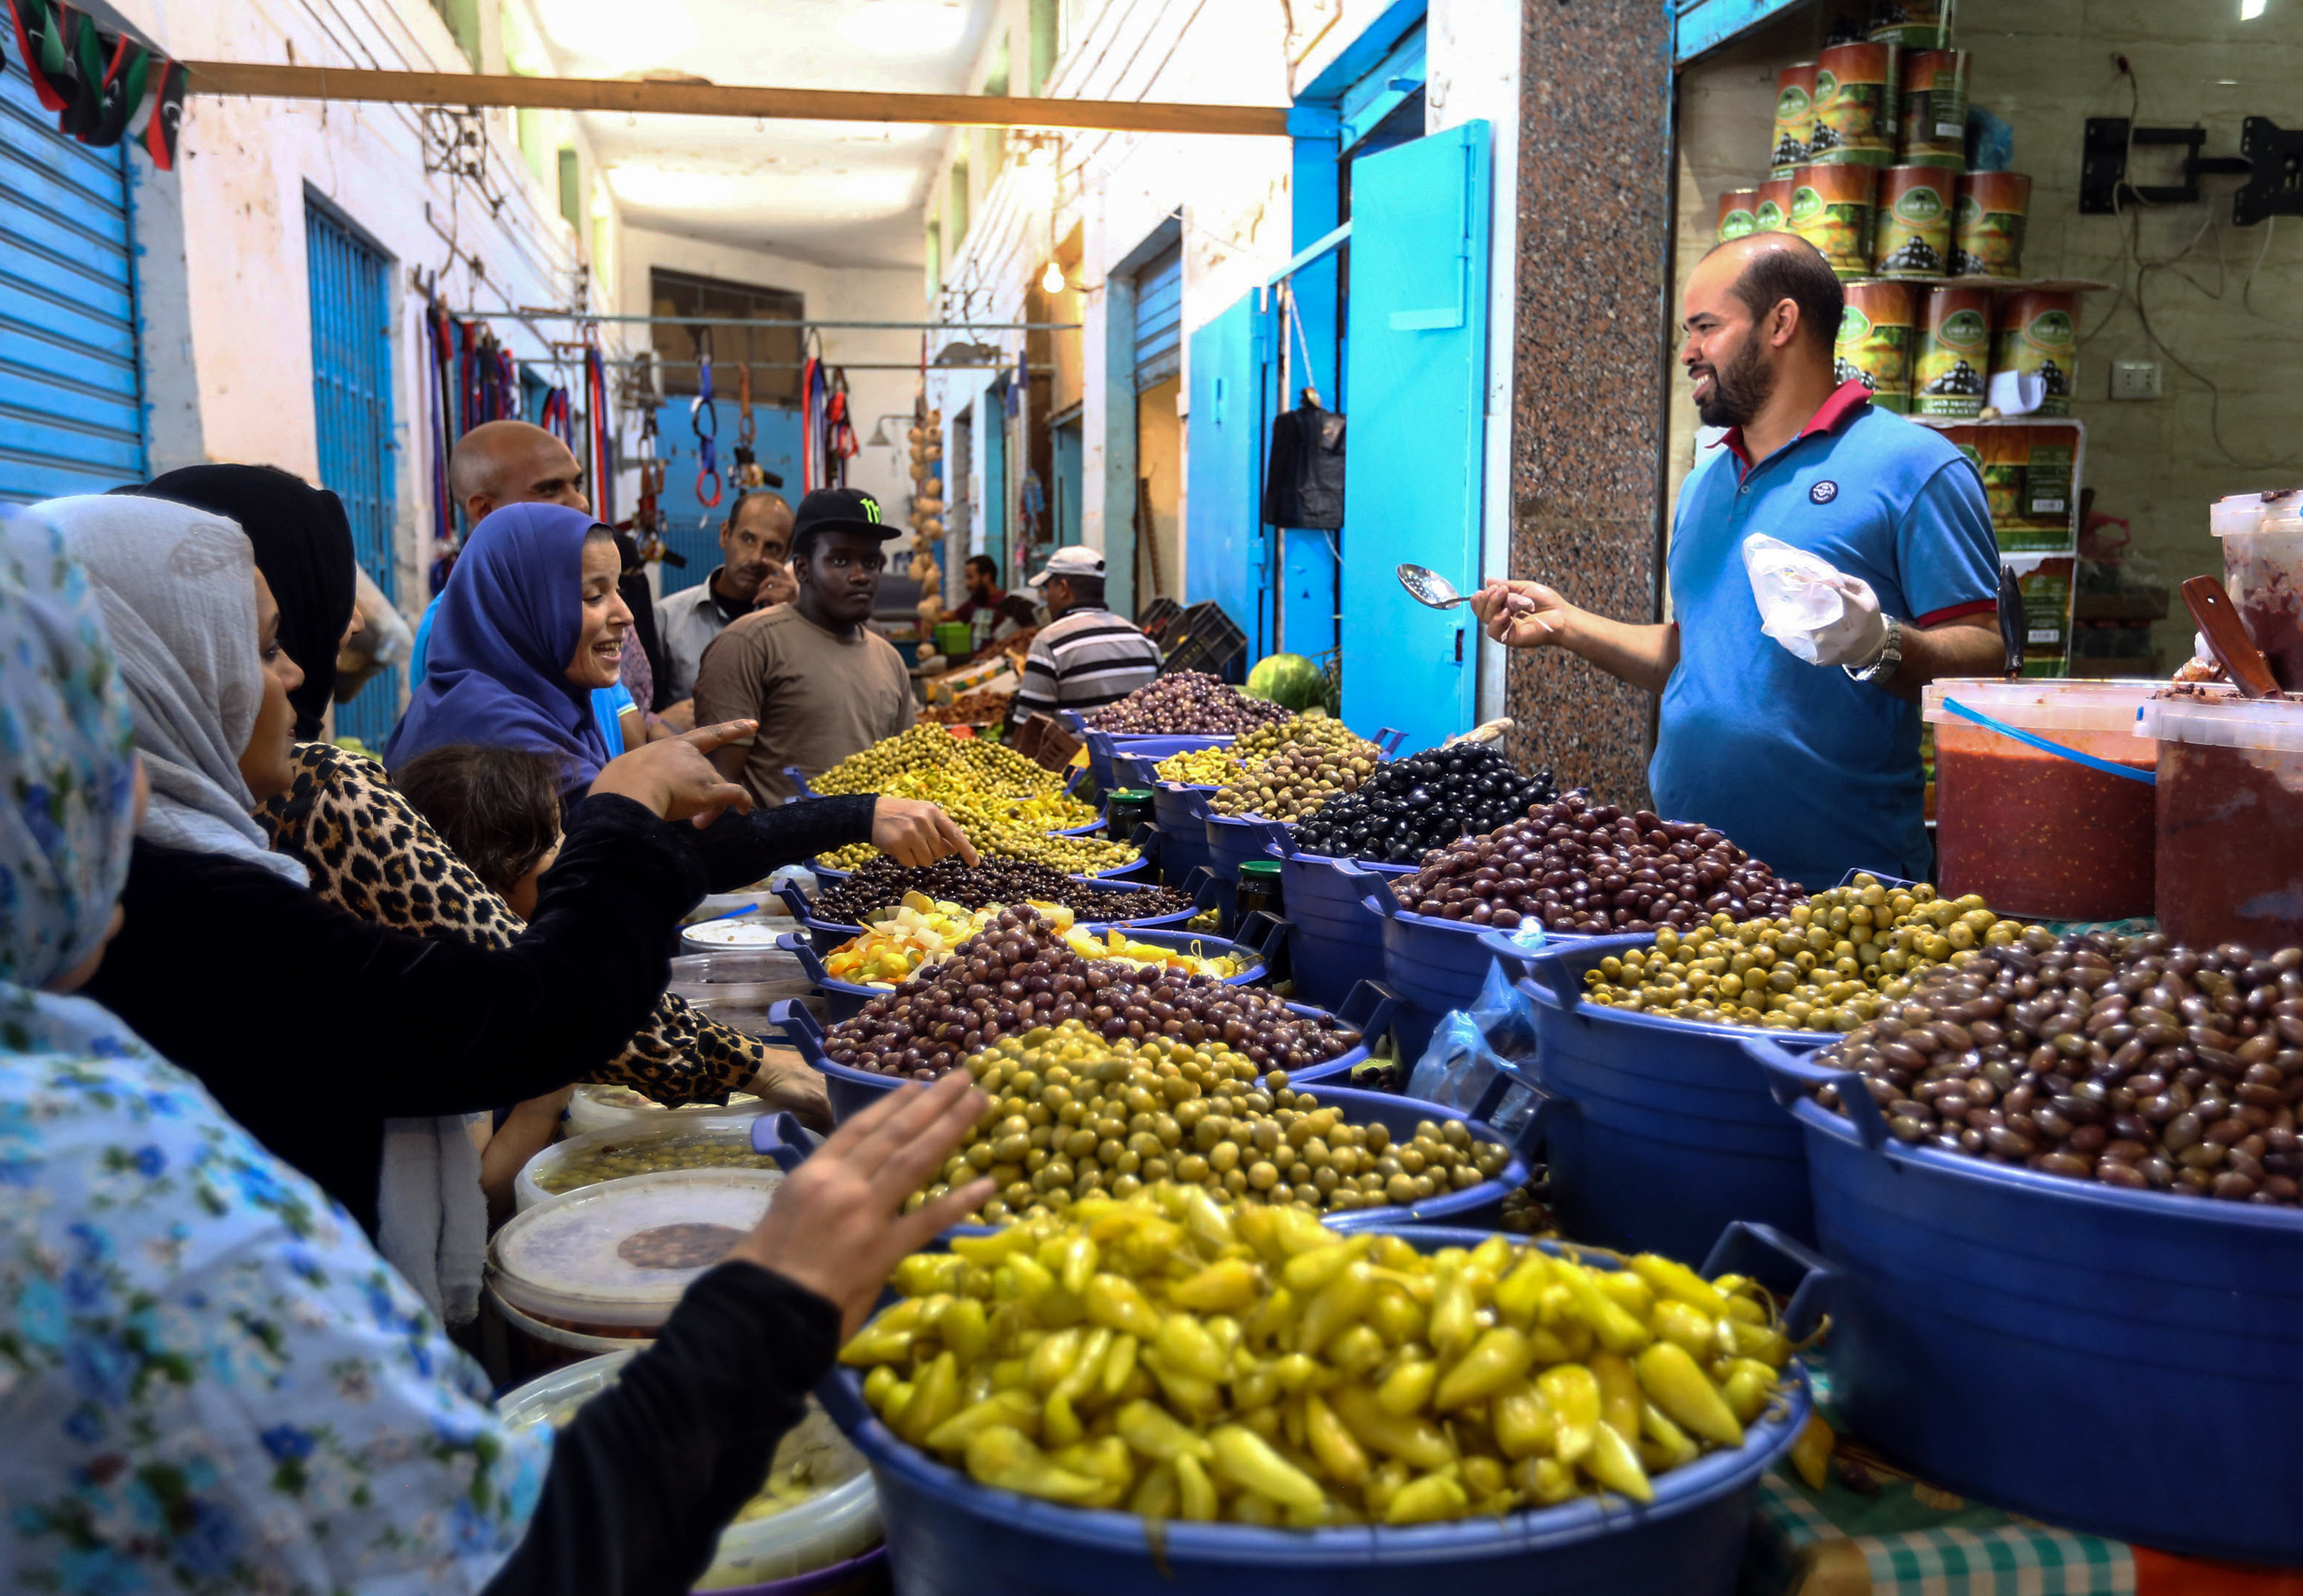 1: A tourist shops for souvenirs at a market in the old city of Tripoli. Photo by Joseph Eid/AFP via Getty Images. 2: Libyans shop for olives and pickles at a market in the center of the capital Tripoli. Photo by Mahmud Turkia/AFP/Getty Images.